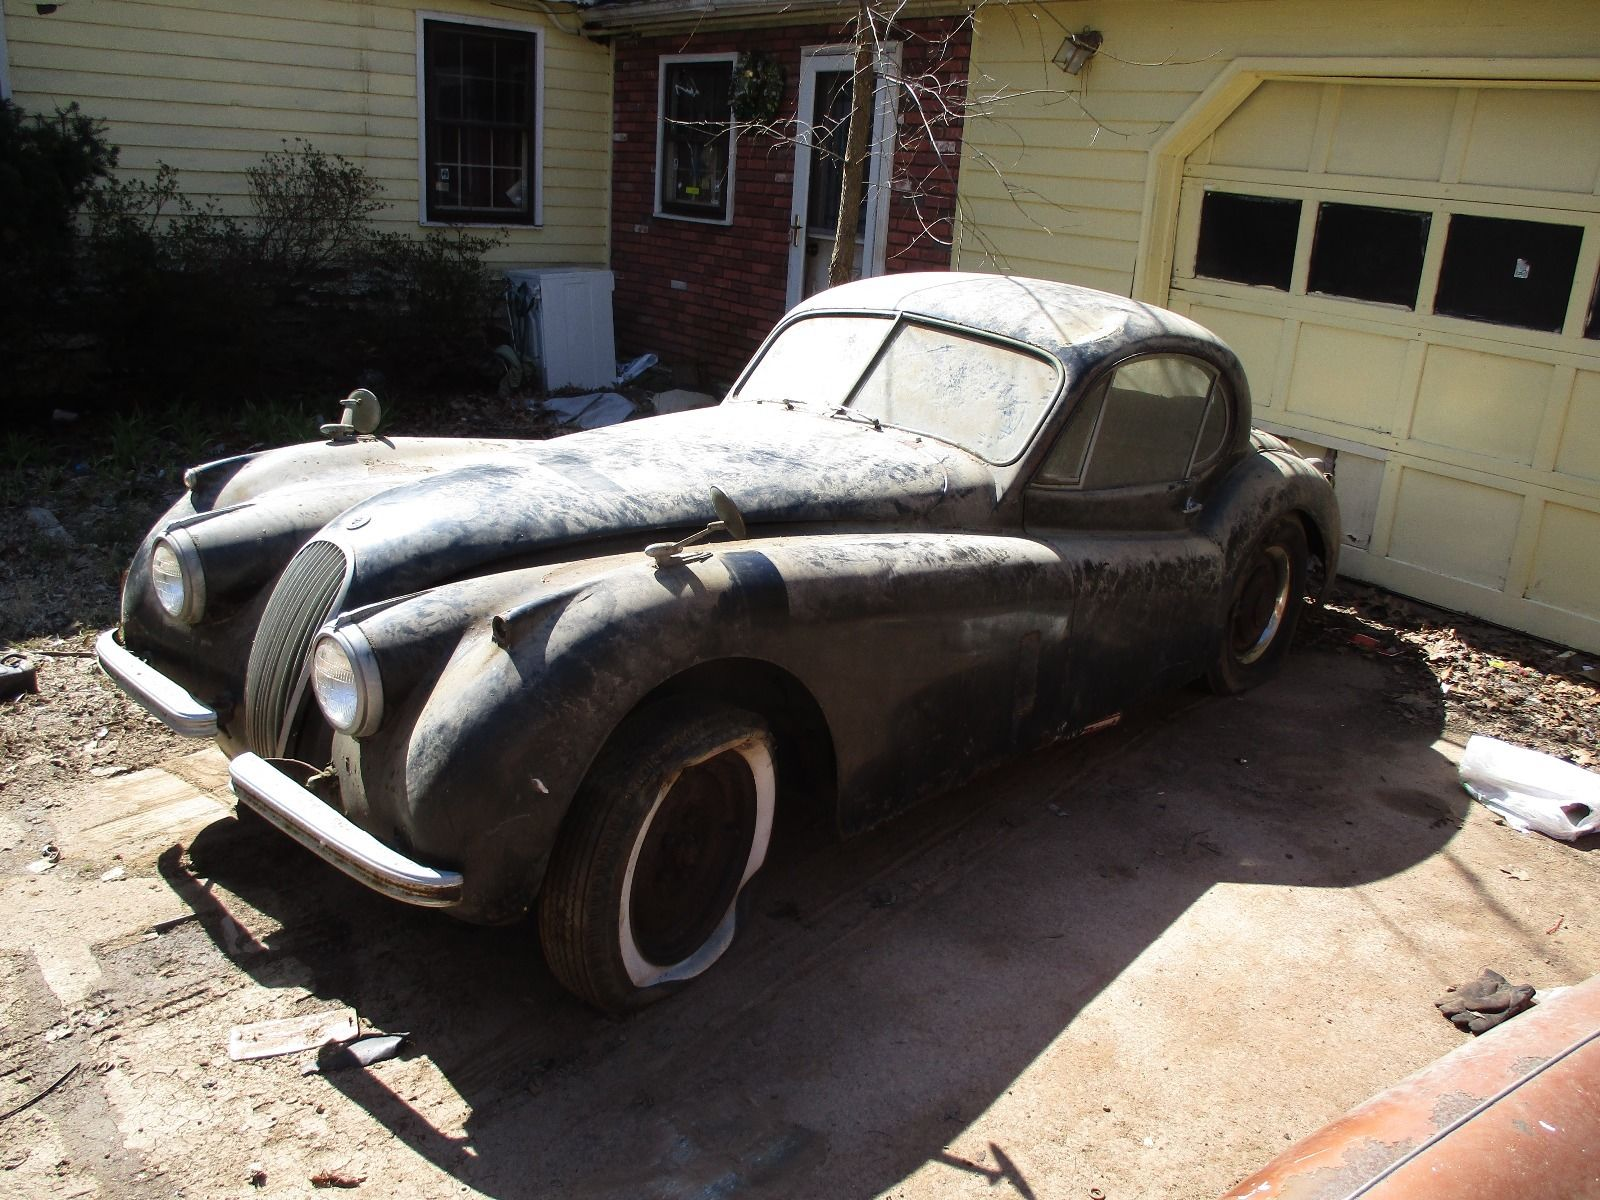 Can you imagine what this car will look and sound like if it is restored?